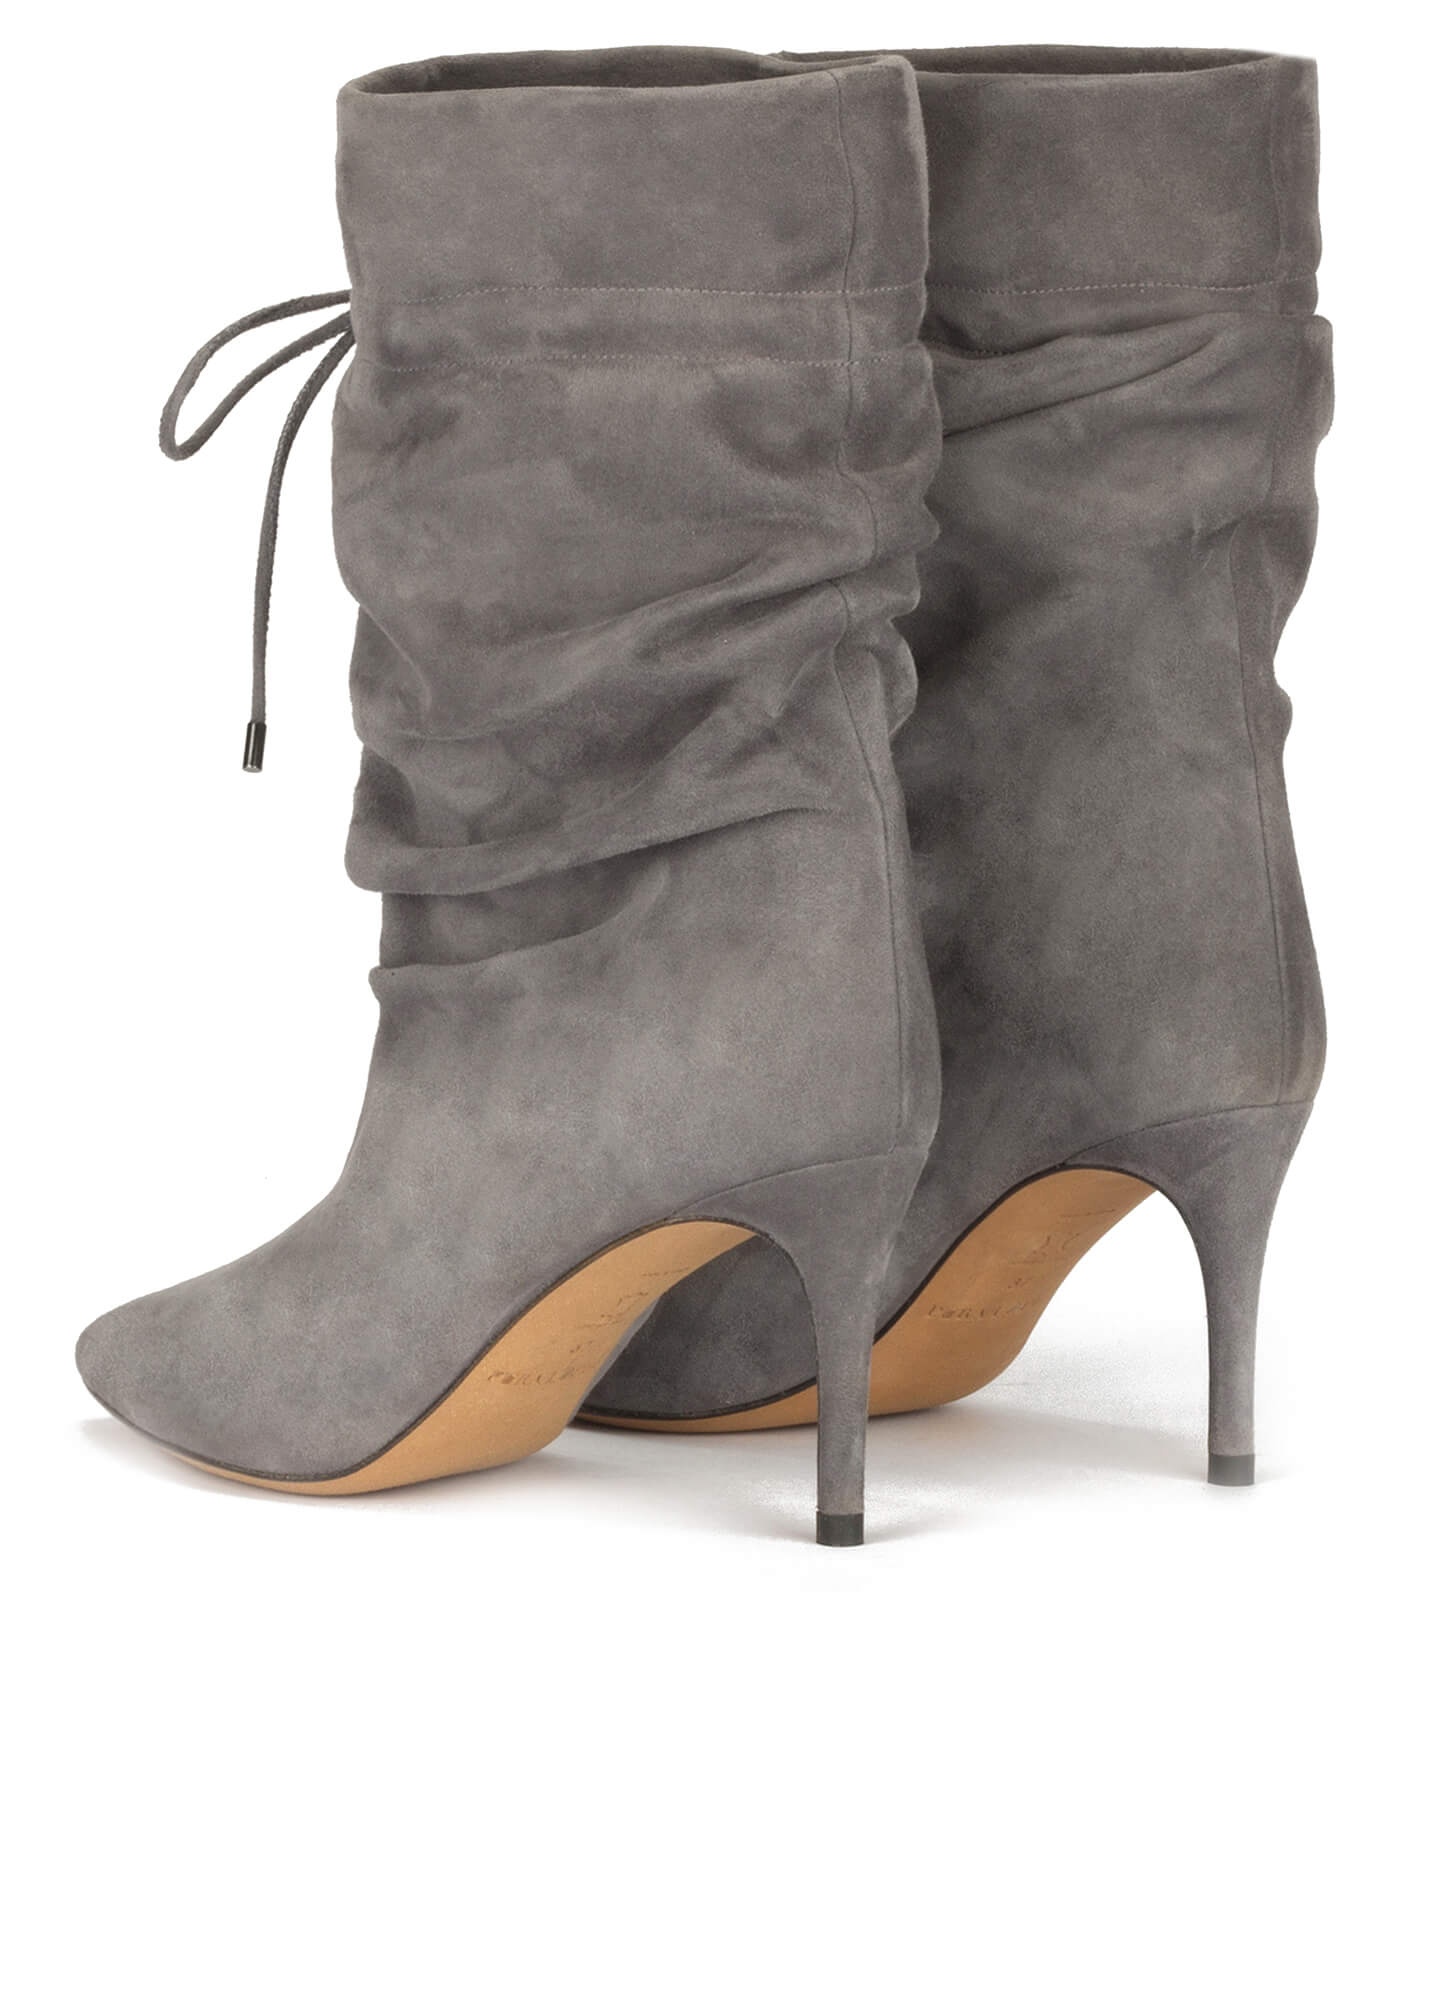 7b87331dd059c Slouchy mid-heel pointy toe ankle boots in grey suede . PURA LOPEZ